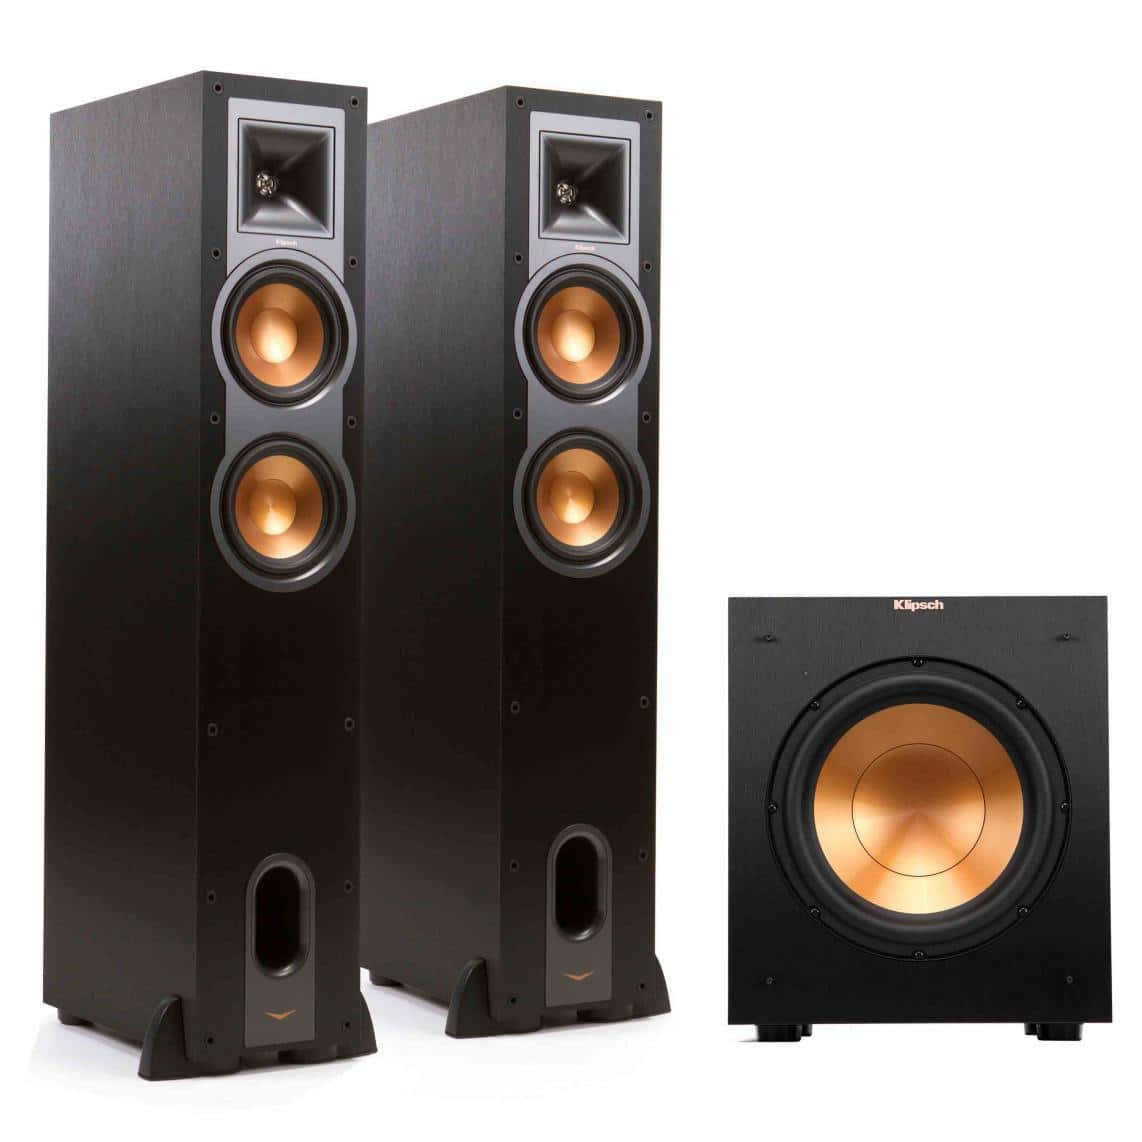 Klipsch R-26F 2.1 system (Two floor standing speakers and sub woofer) $523